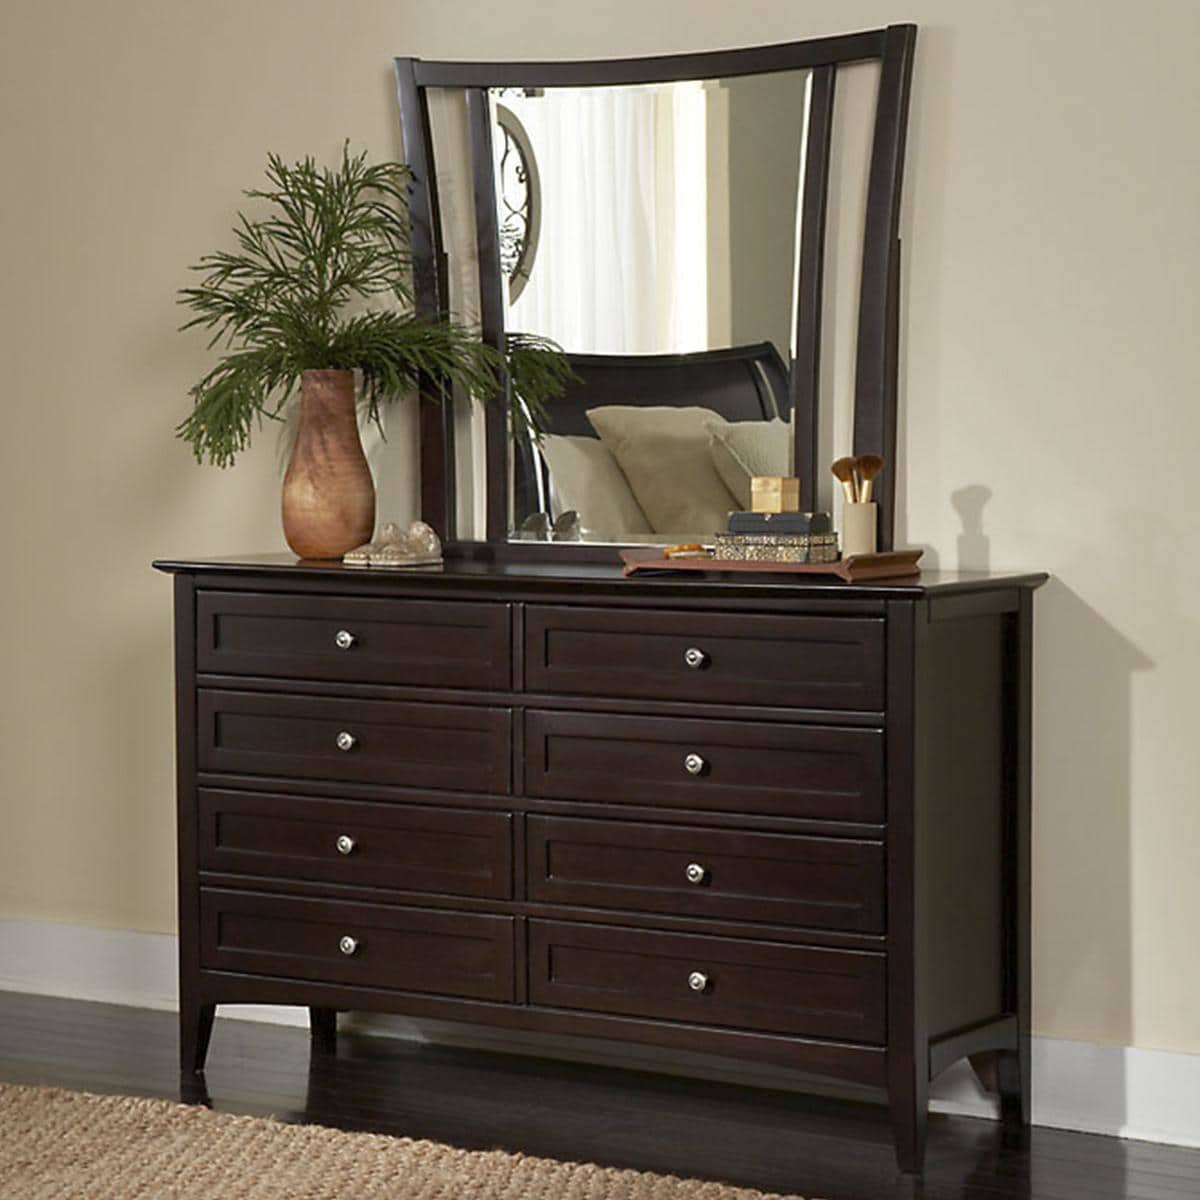 Oversized Chest Of Drawers Mirror